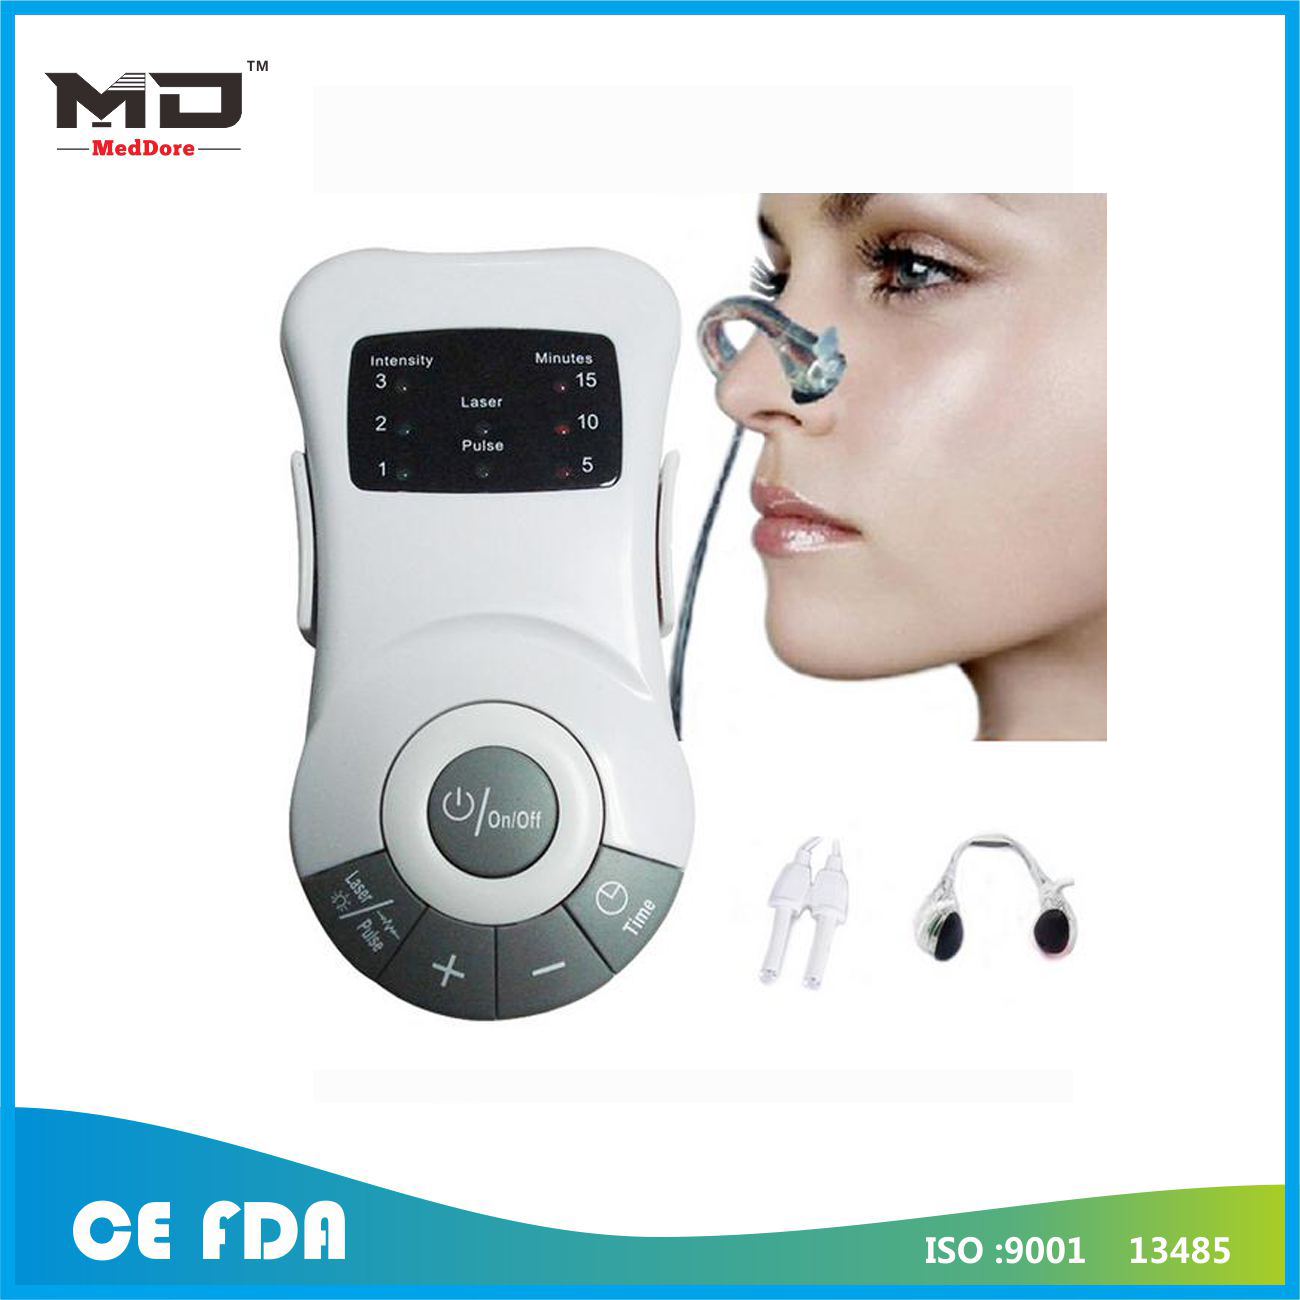 Meddore Portable Gift Allergy Reliever Low Frequency Laser Rhinitis Rhinitis Machine Health M